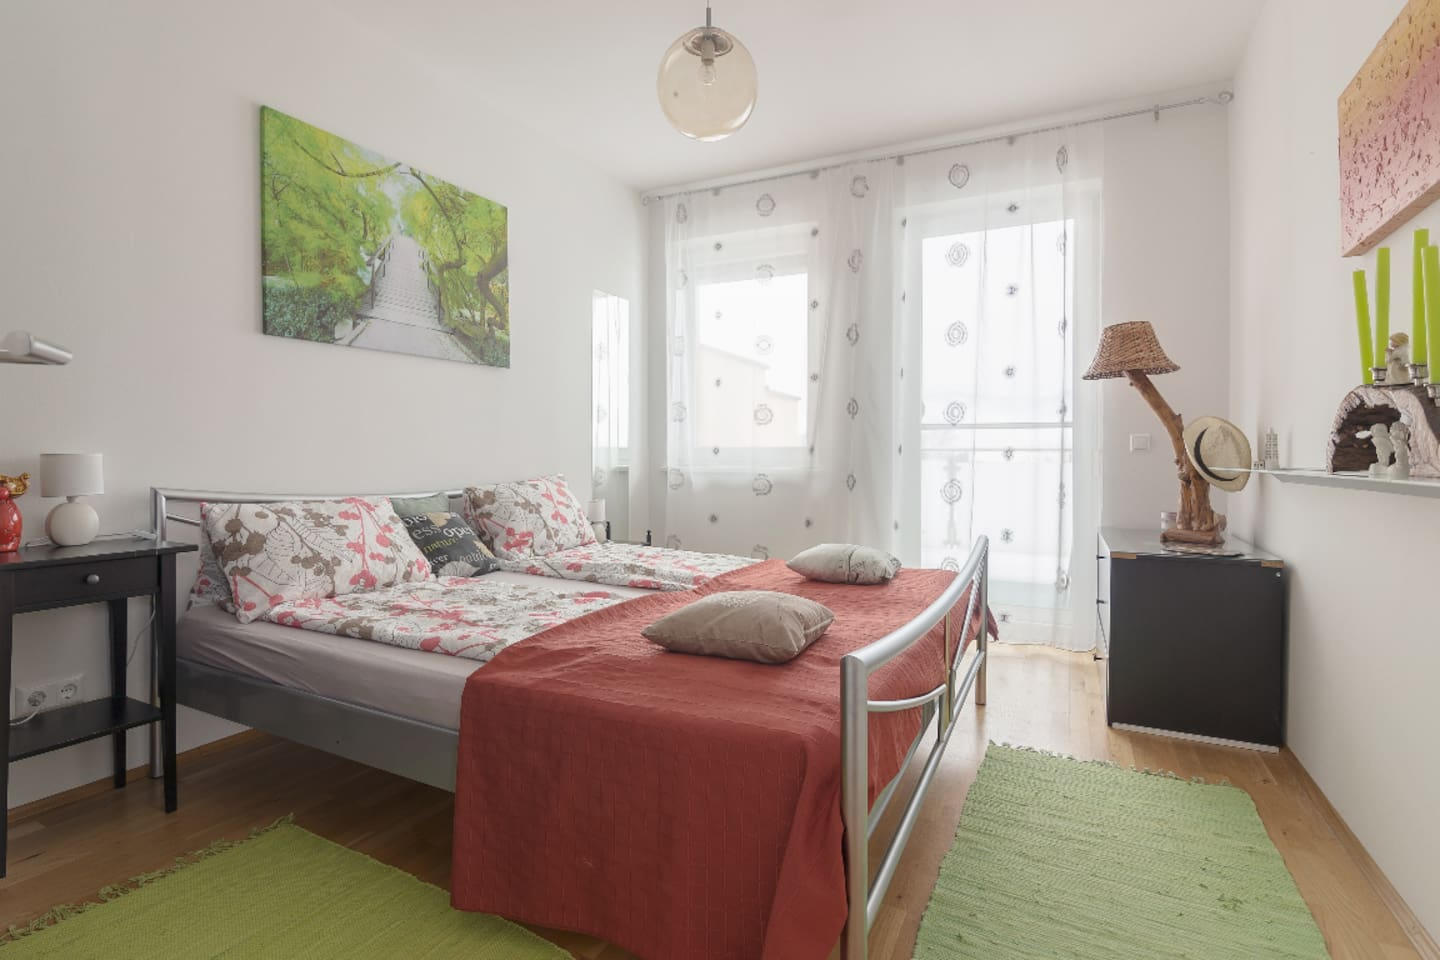 First comfy dormitory with spacious double-bed and own balcony. Very bright, nice looking room.